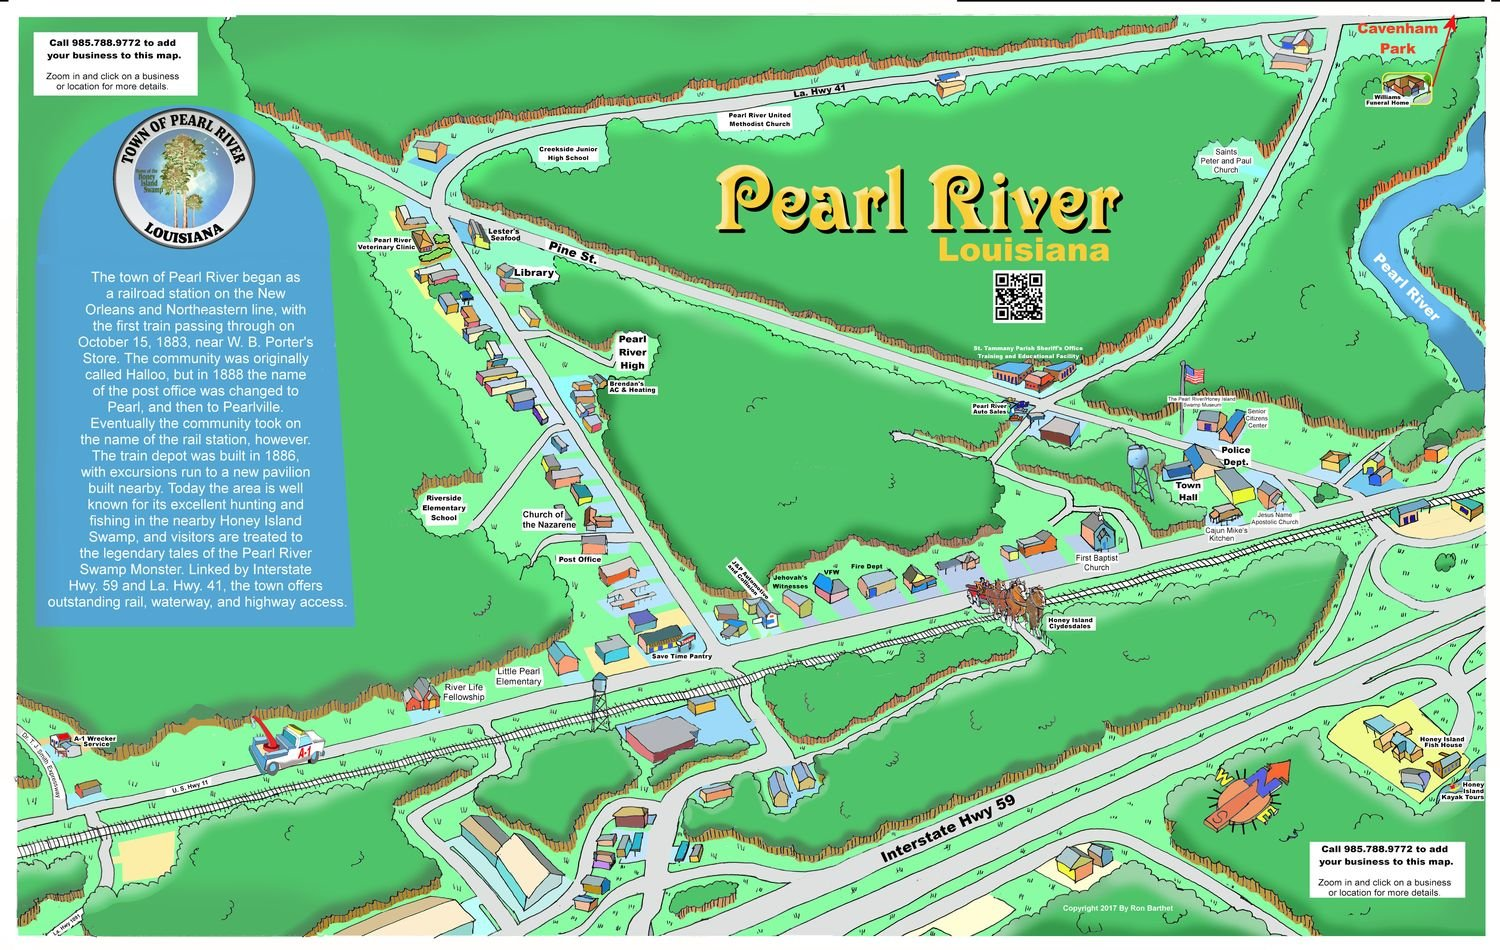 "24"" X 36"" Full Color Caricature Rendering of Pearl River, LA"